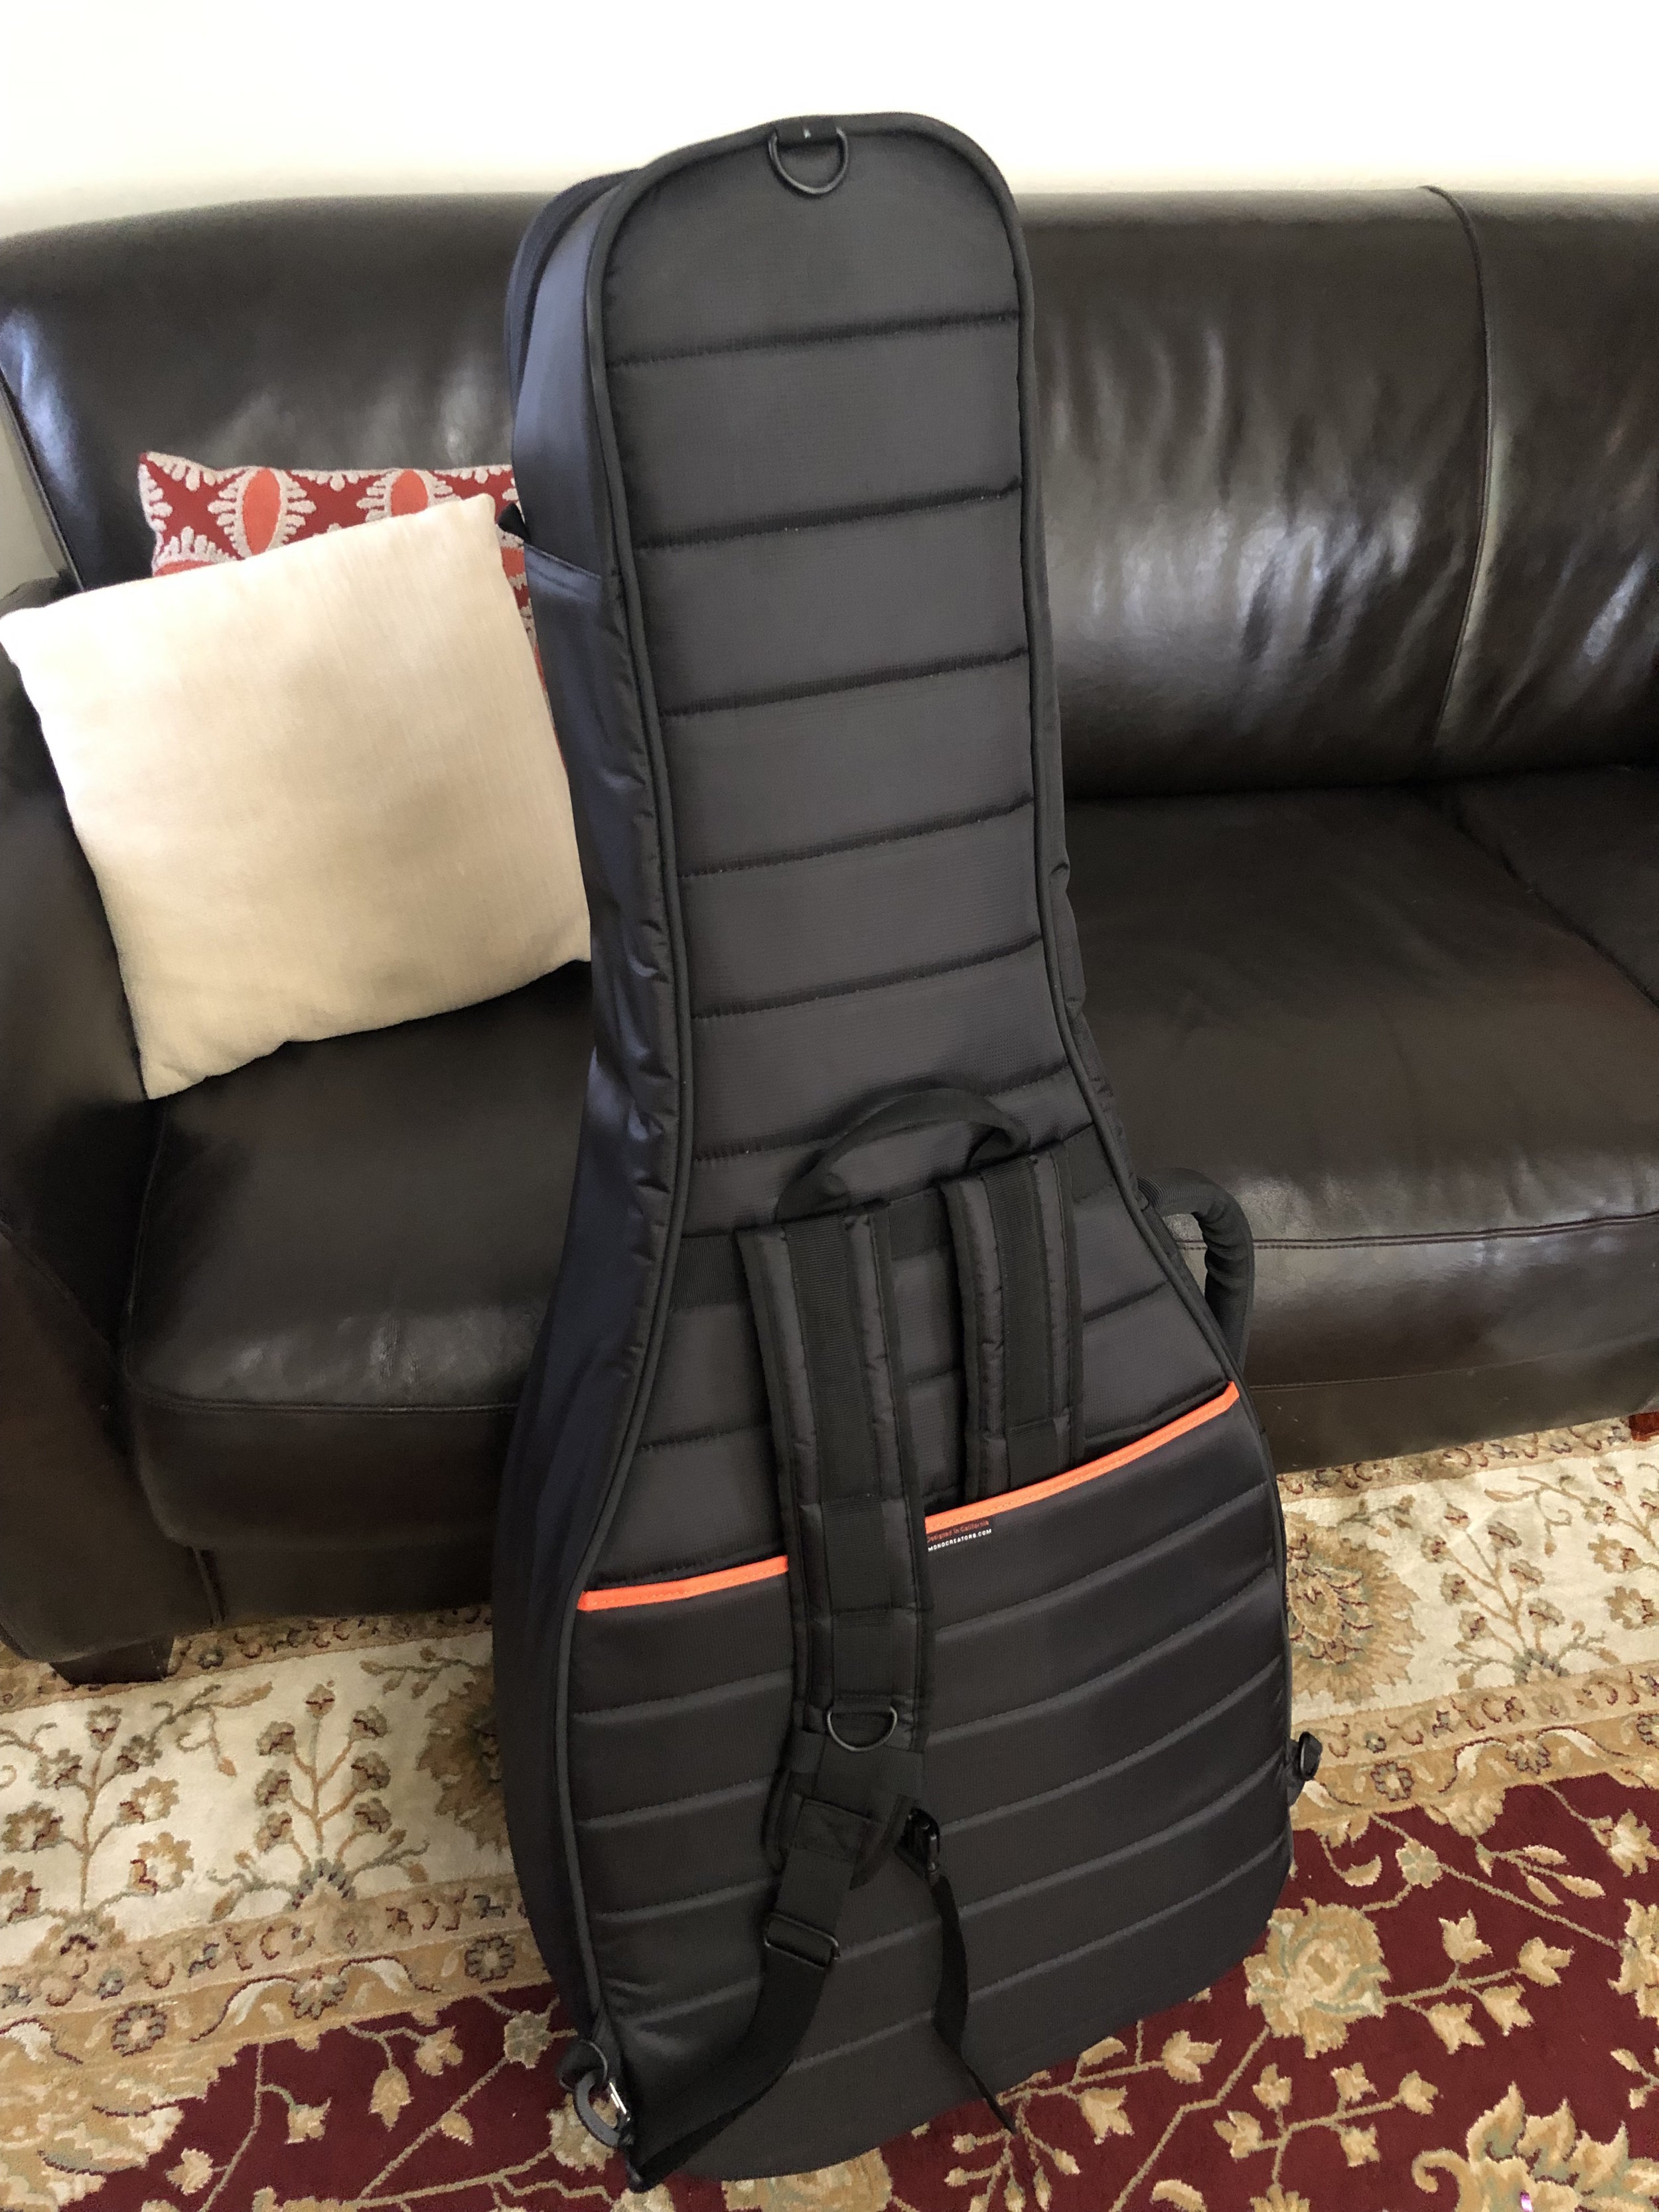 Backpack straps can be hidden, or used with one or both straps.